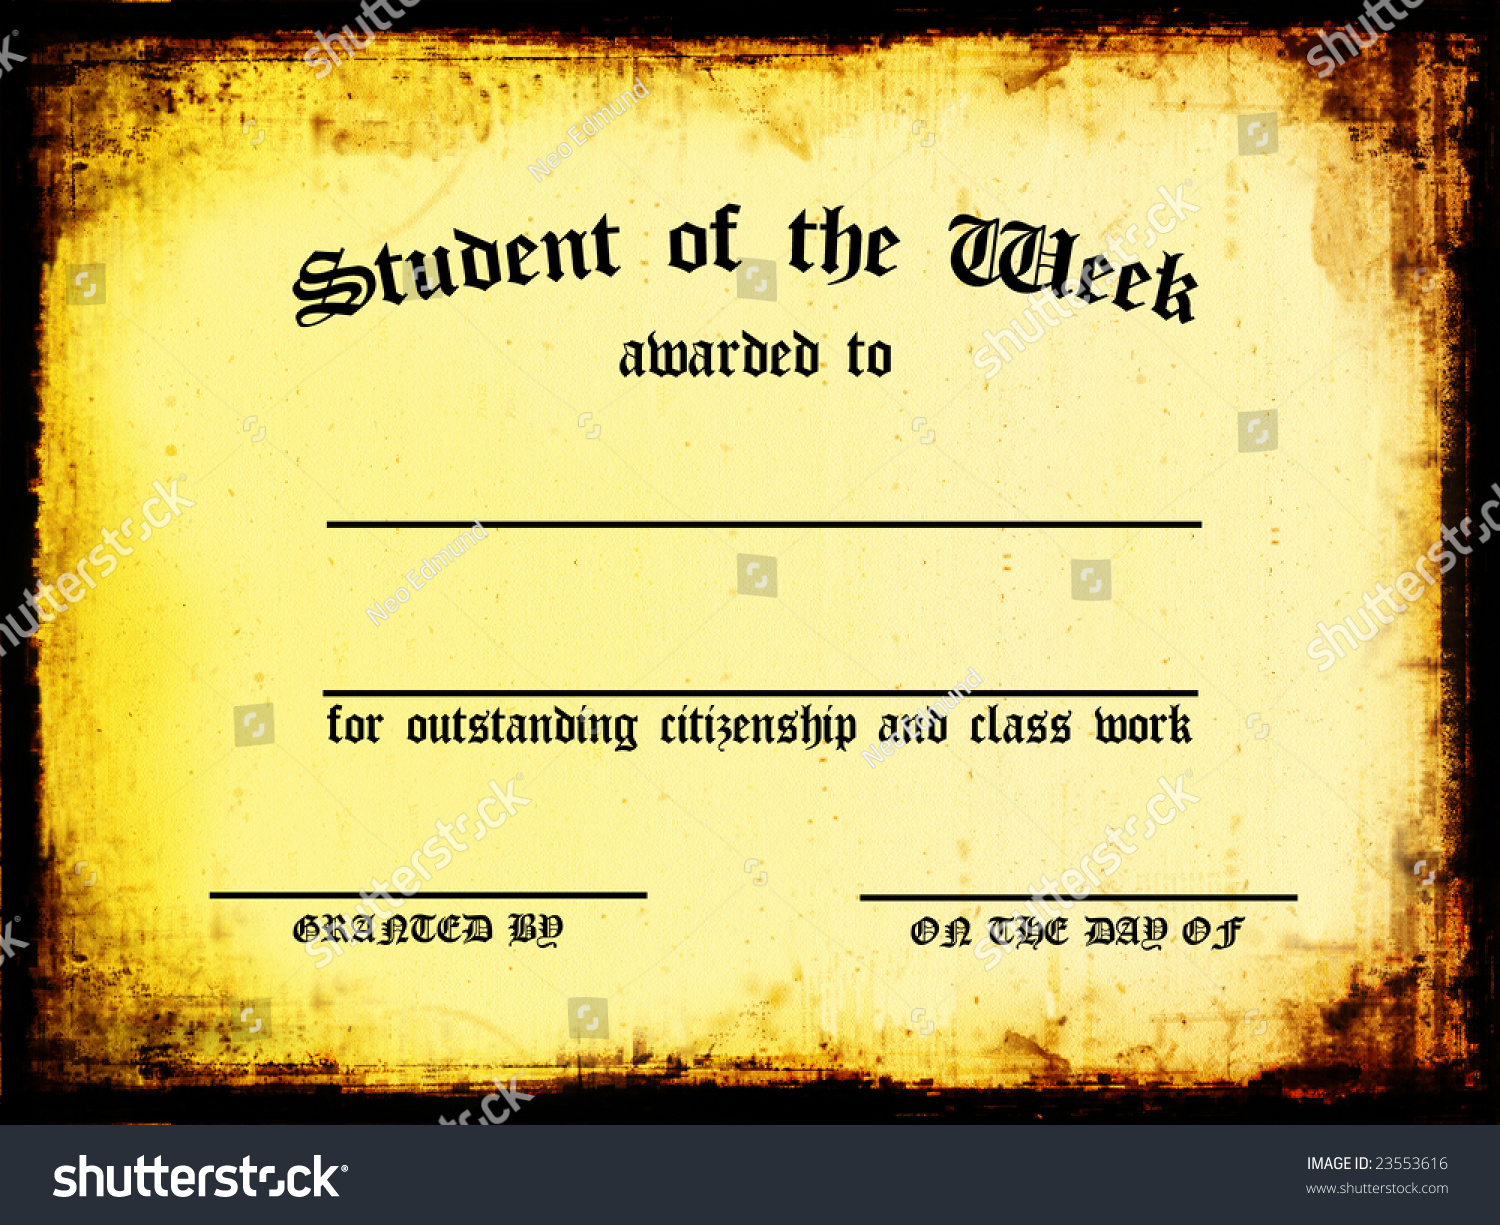 Customizable student week certificate stock illustration 23553616 customizable student of the week certificate xflitez Choice Image